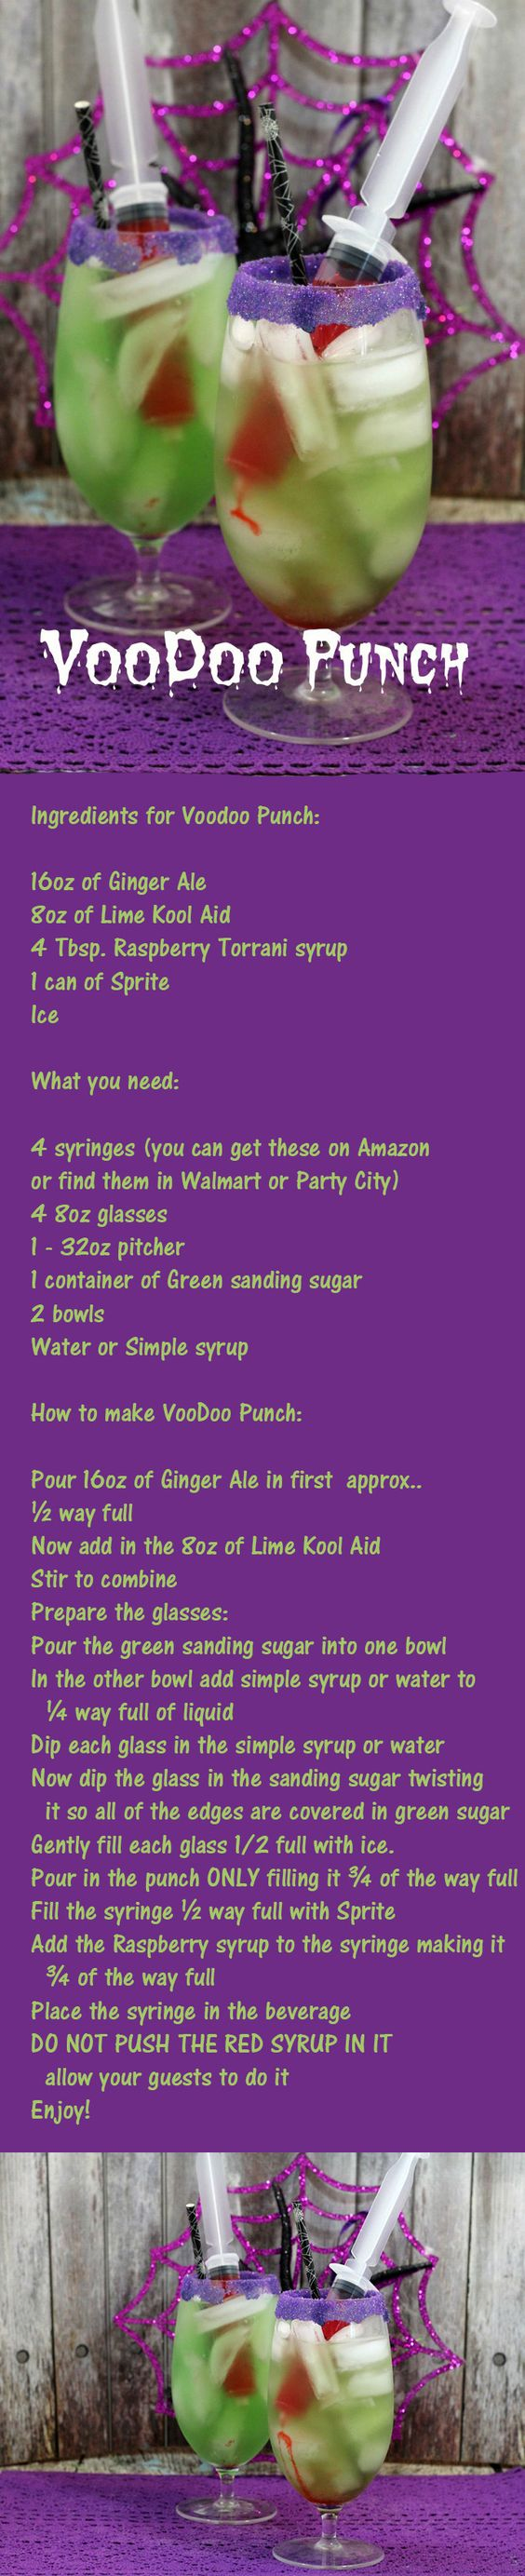 VooDoo Punch, Perfect Halloween Party Drink | Punch, Bal masqué et ...